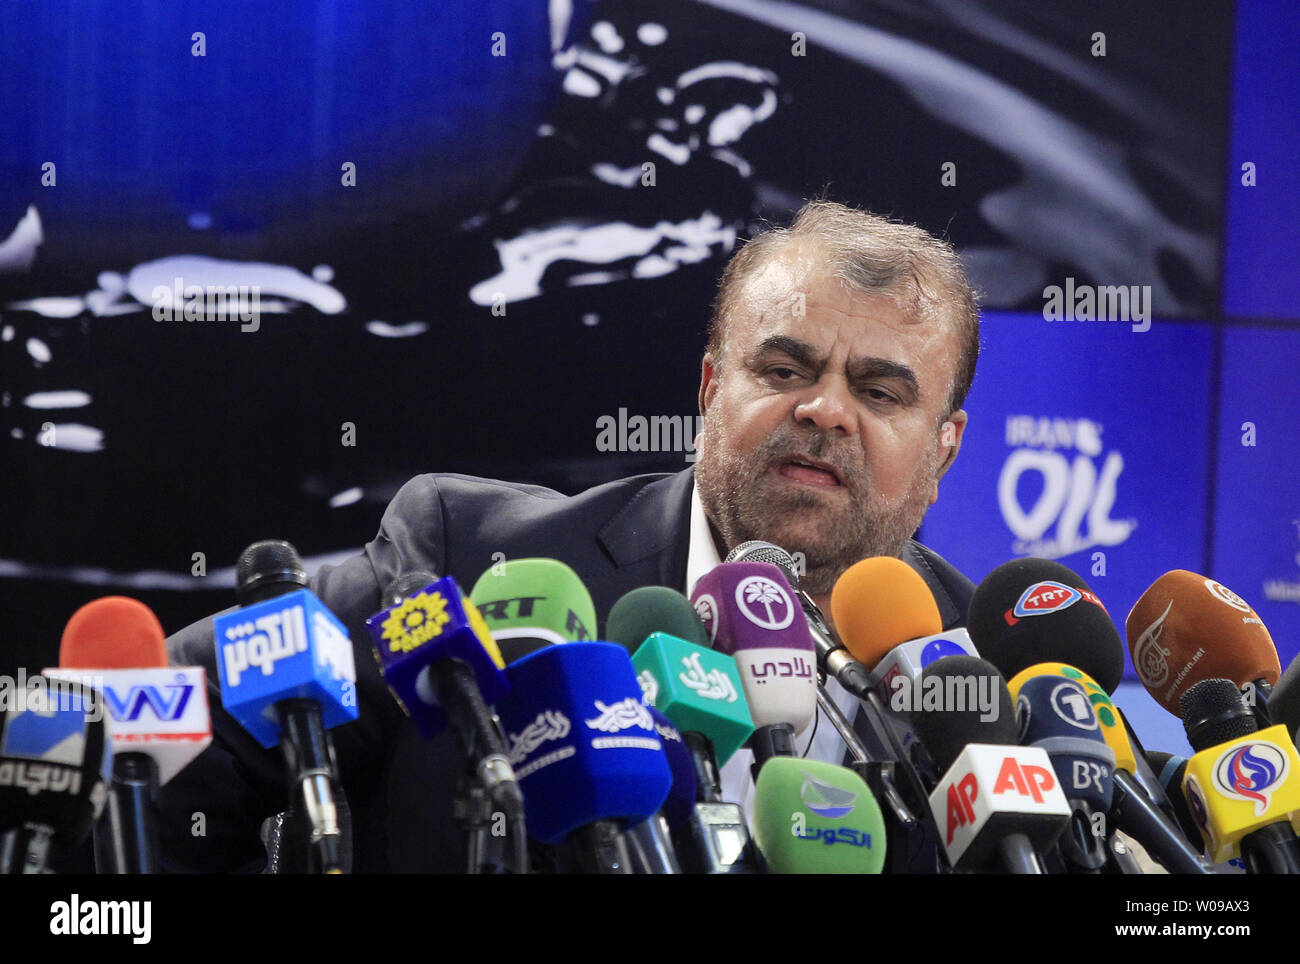 Iran's Oil MInister Rostam Qasemi speaks during a press conference in Tehran, Iran on April 19, 2012. Qasemi said Tehran has officially cut off its oil exports to London and Paris.     UPI/Maryam Rahmanian - Stock Image